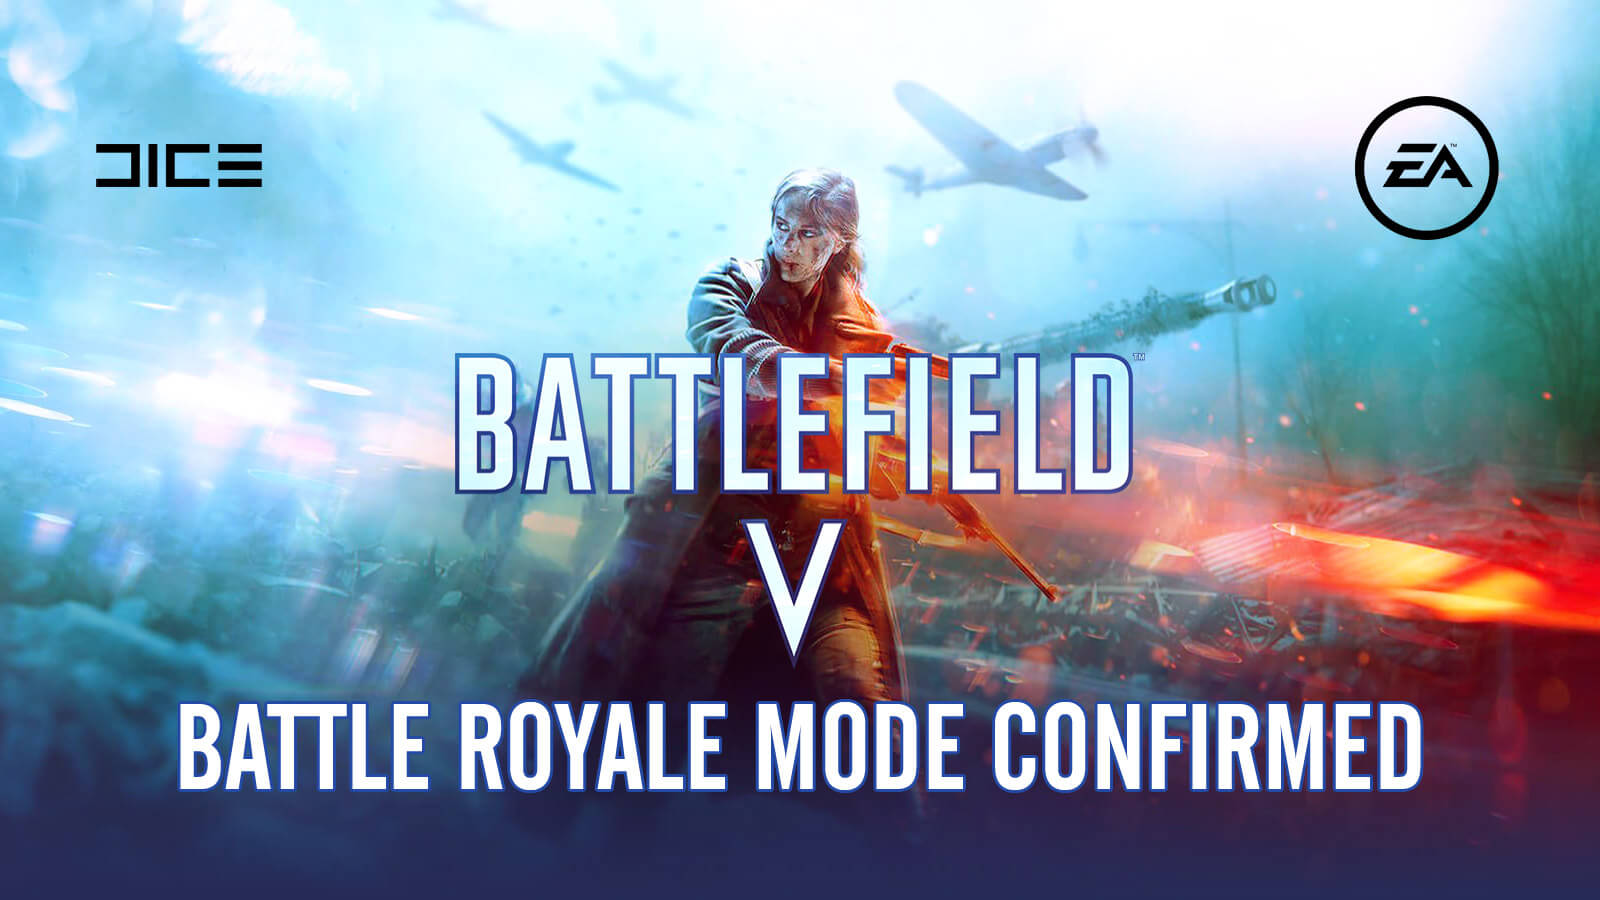 Ea Battle Royal